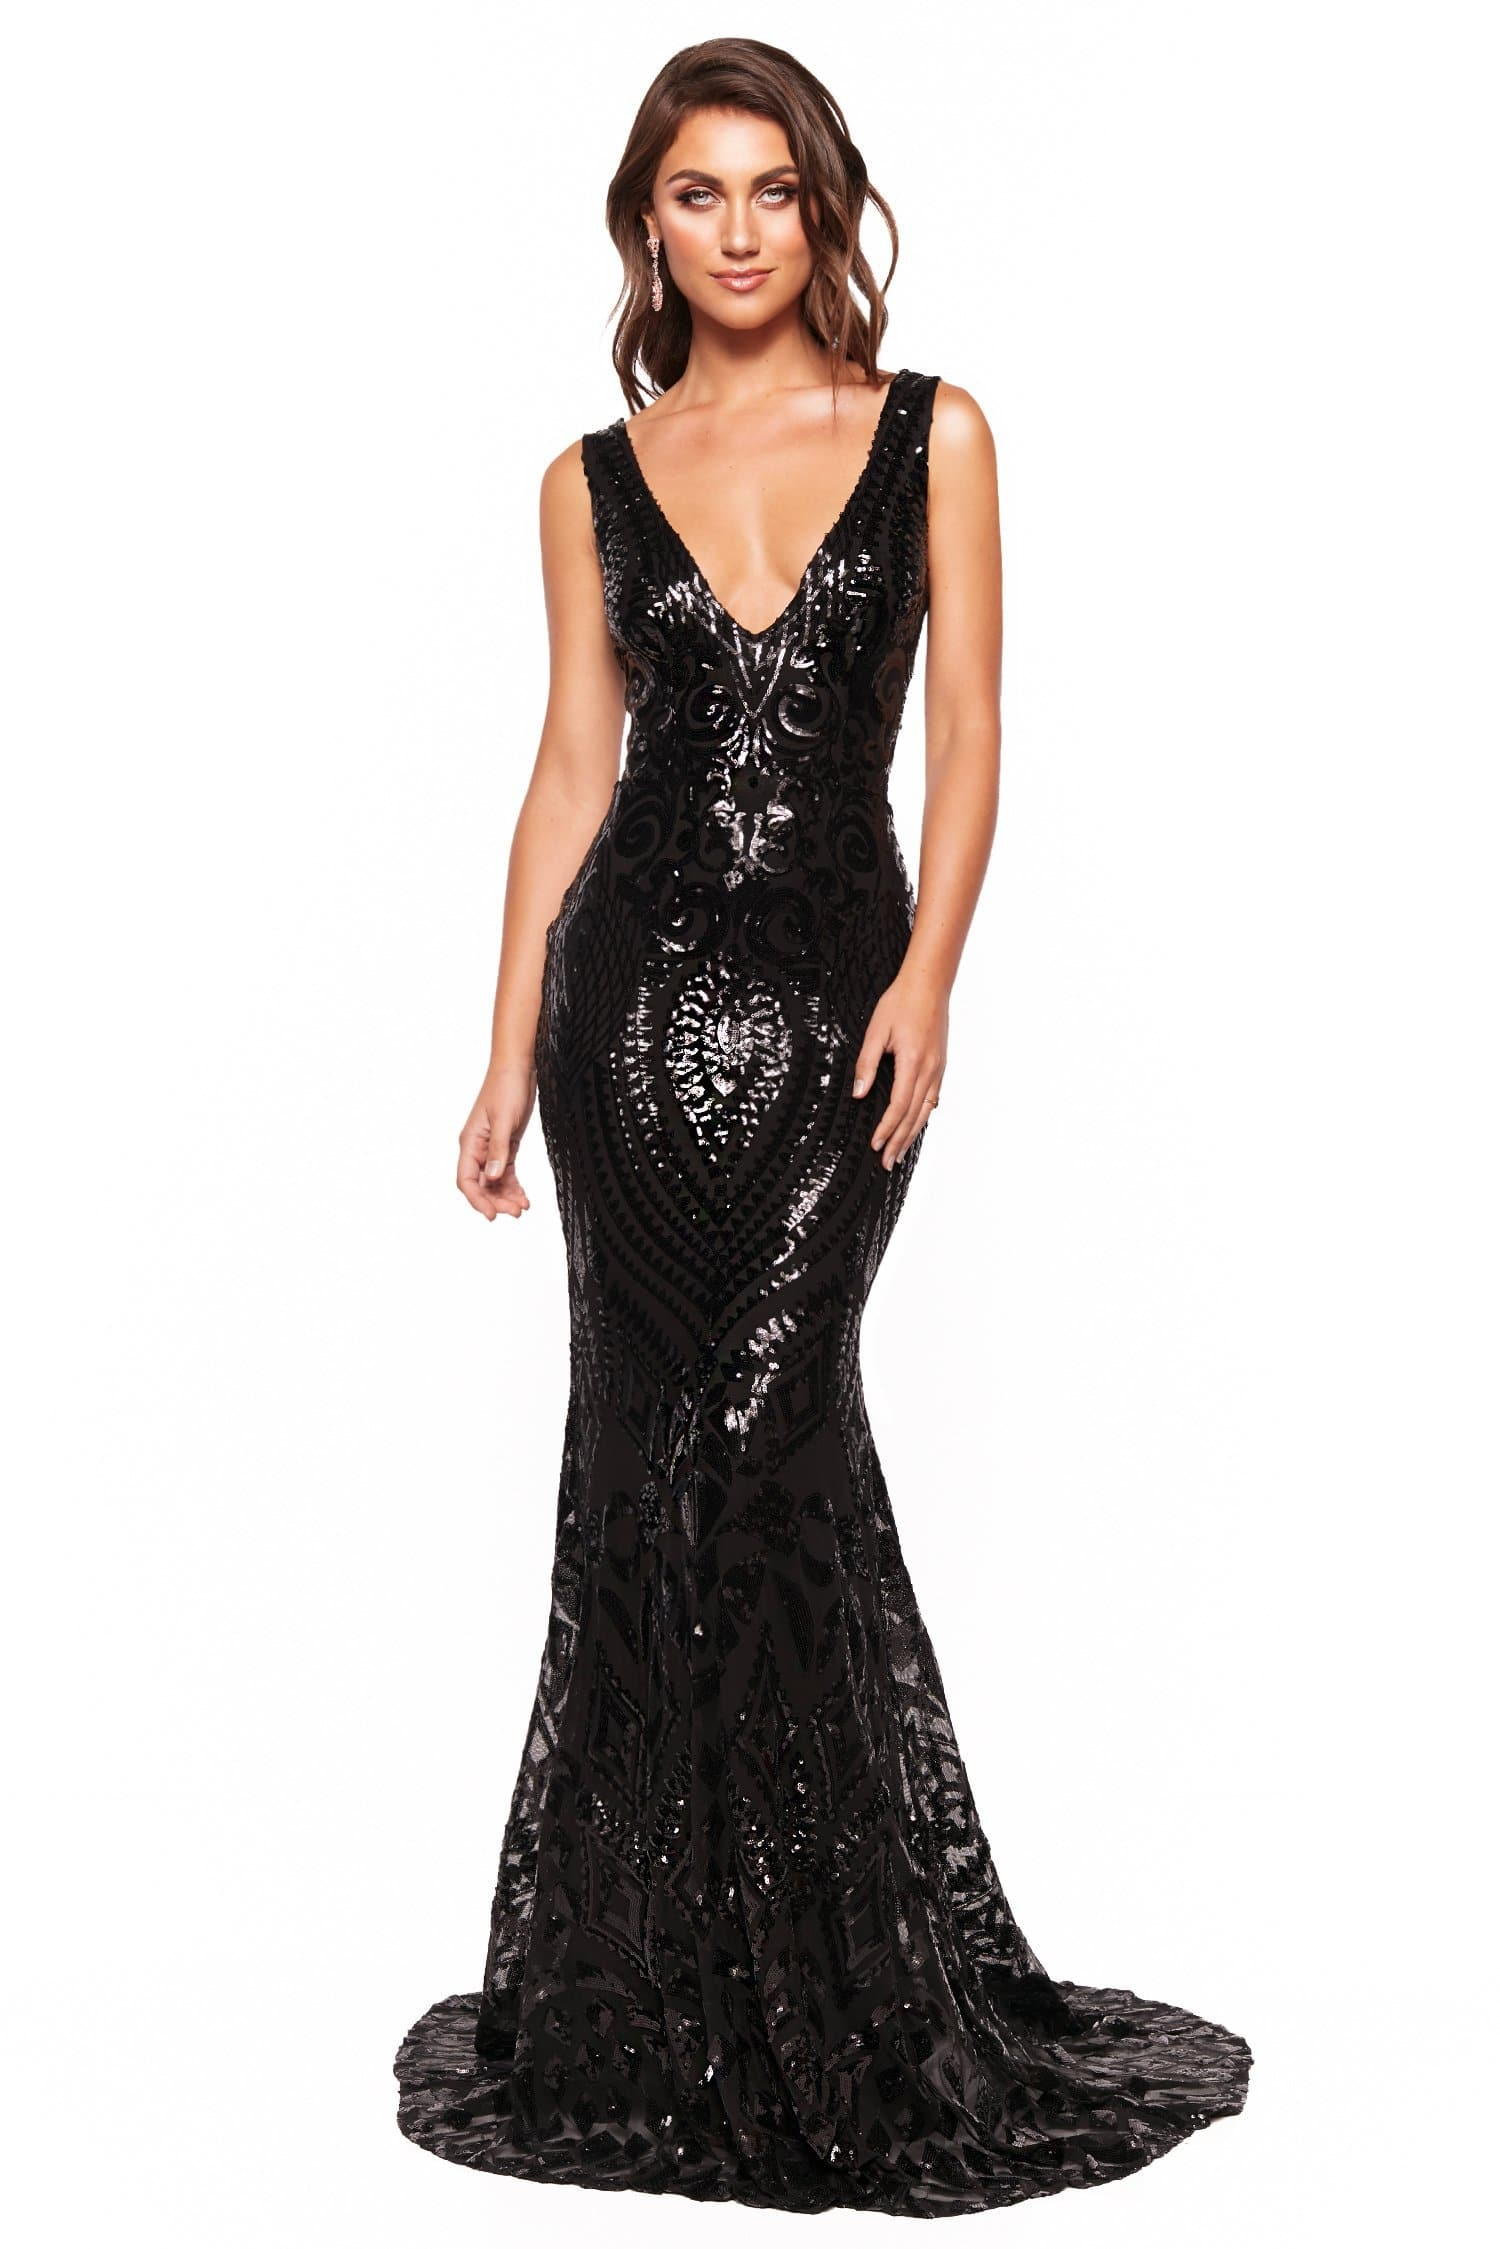 A&N Luxe Crown - Black Sequin Gown with Plunge Neck & Open Back